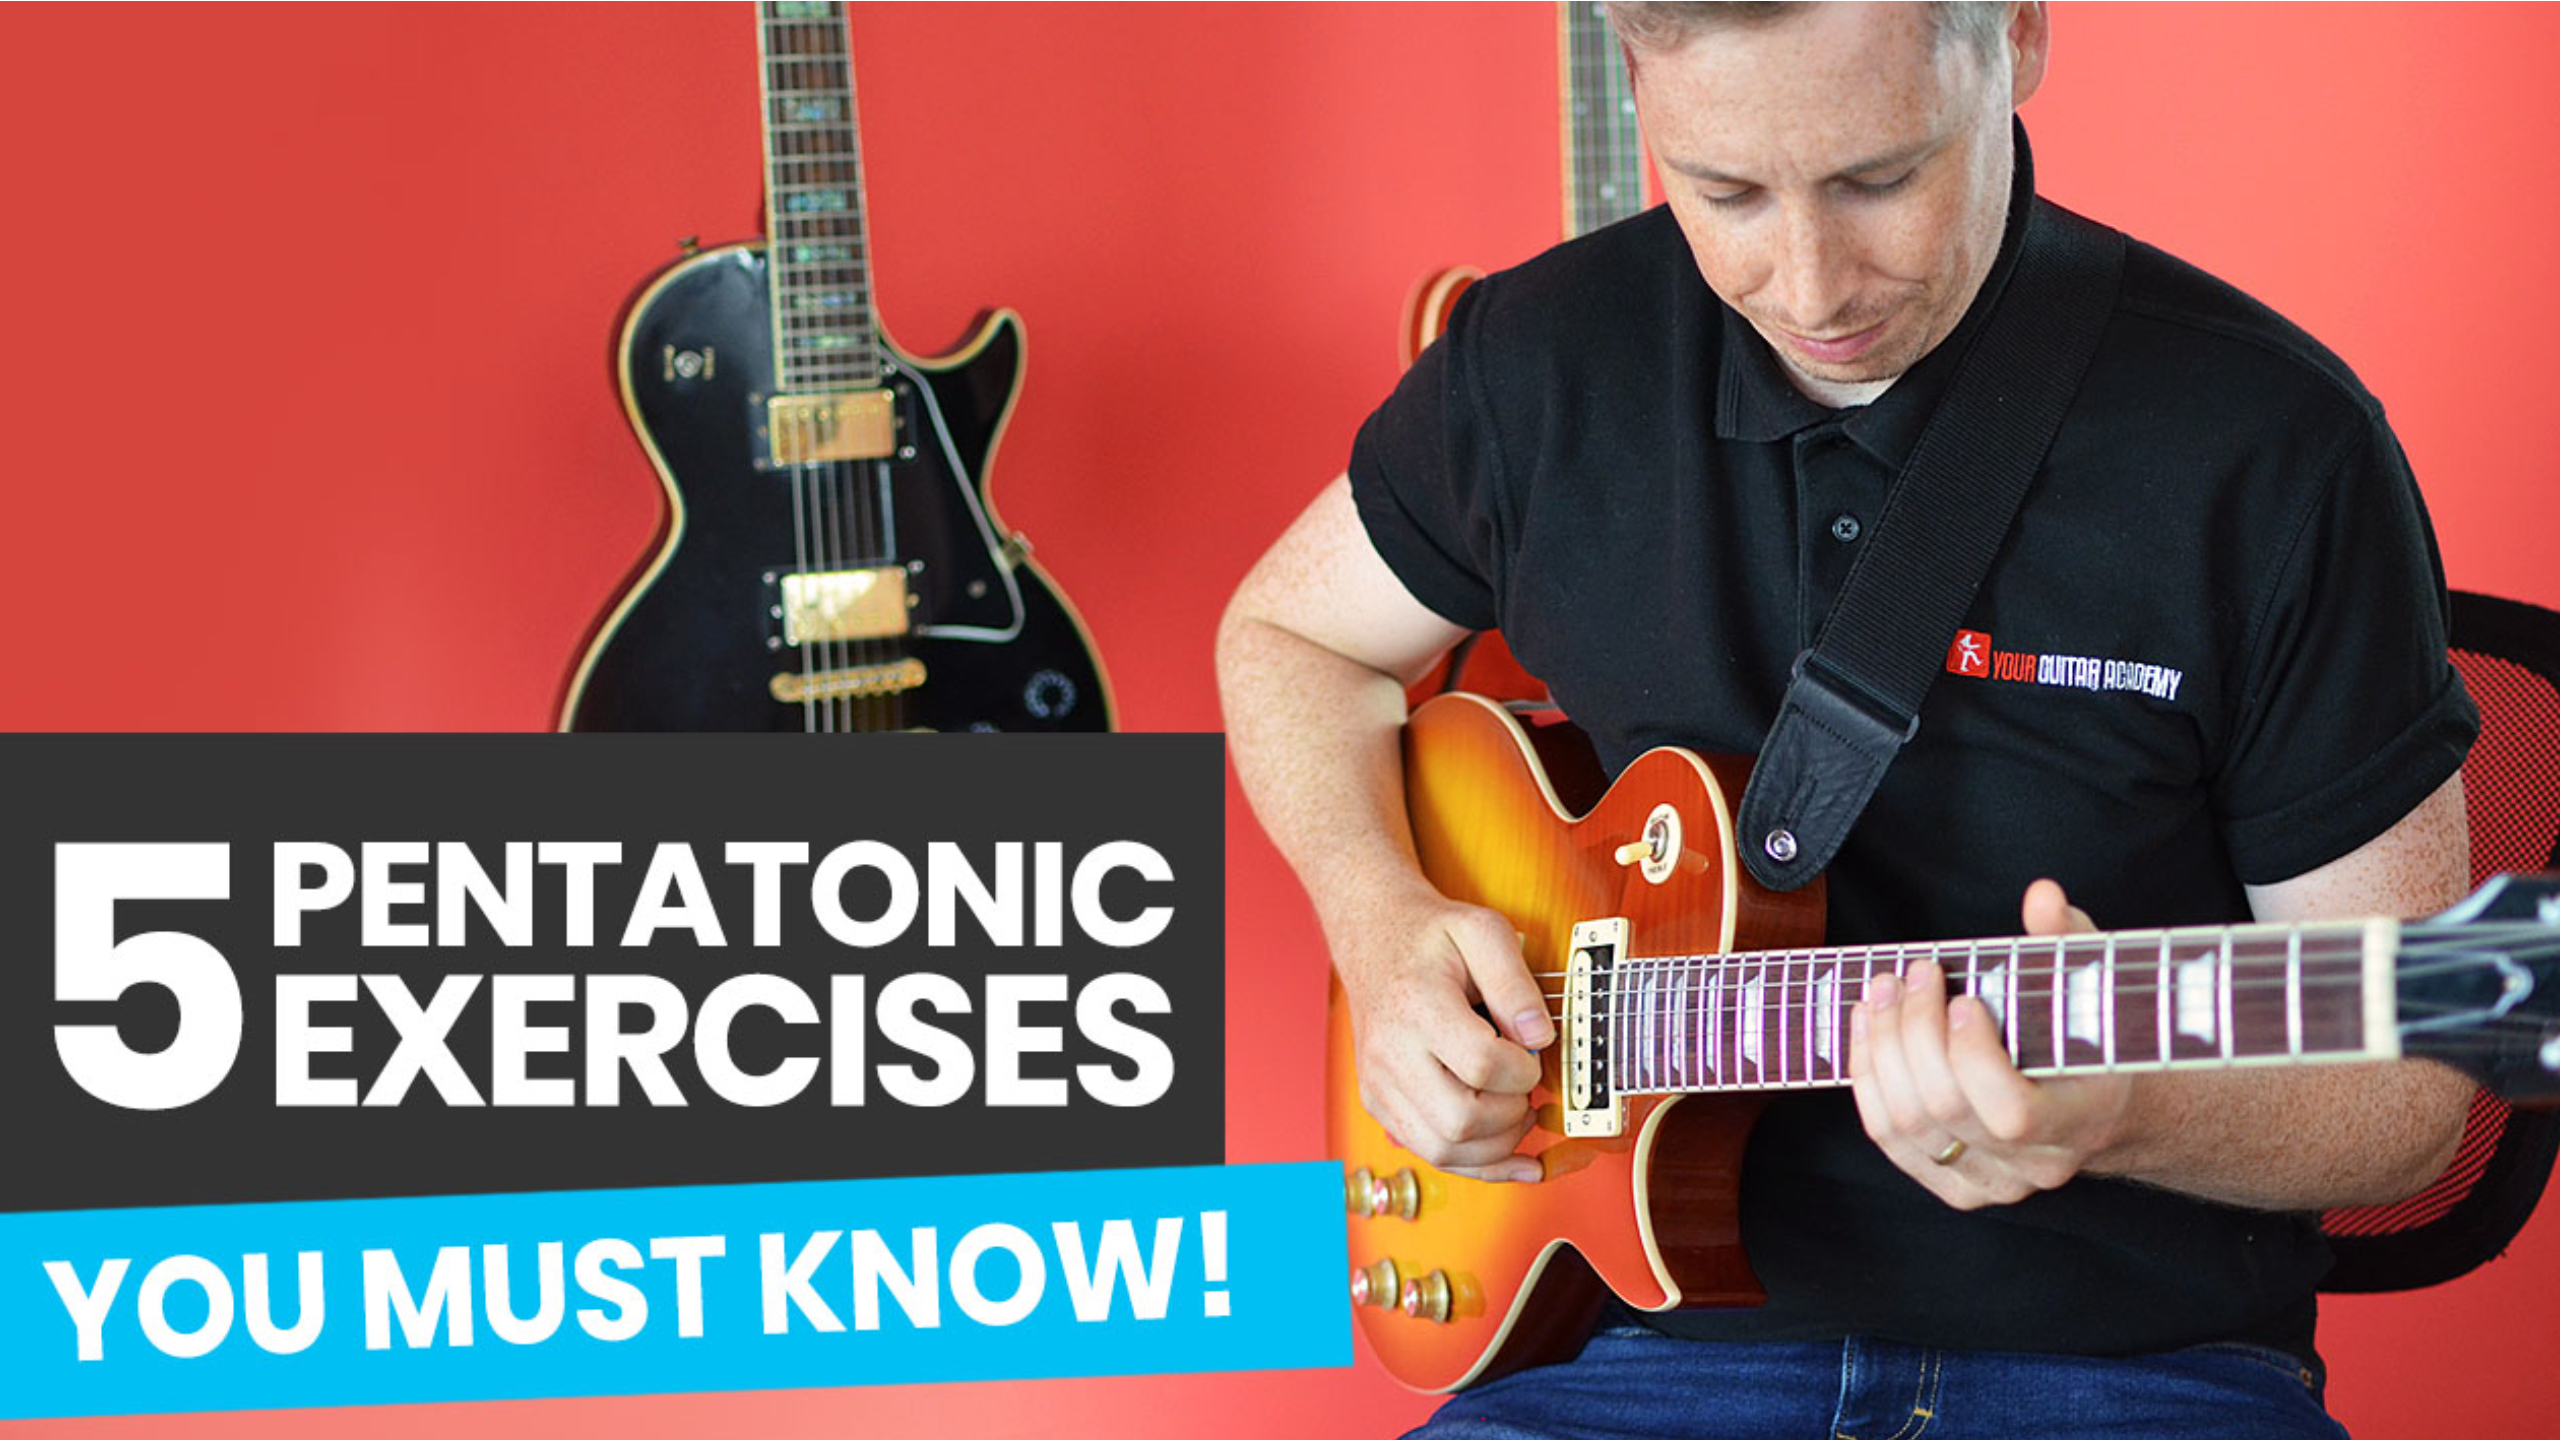 5 cool exercises to help your improvisation